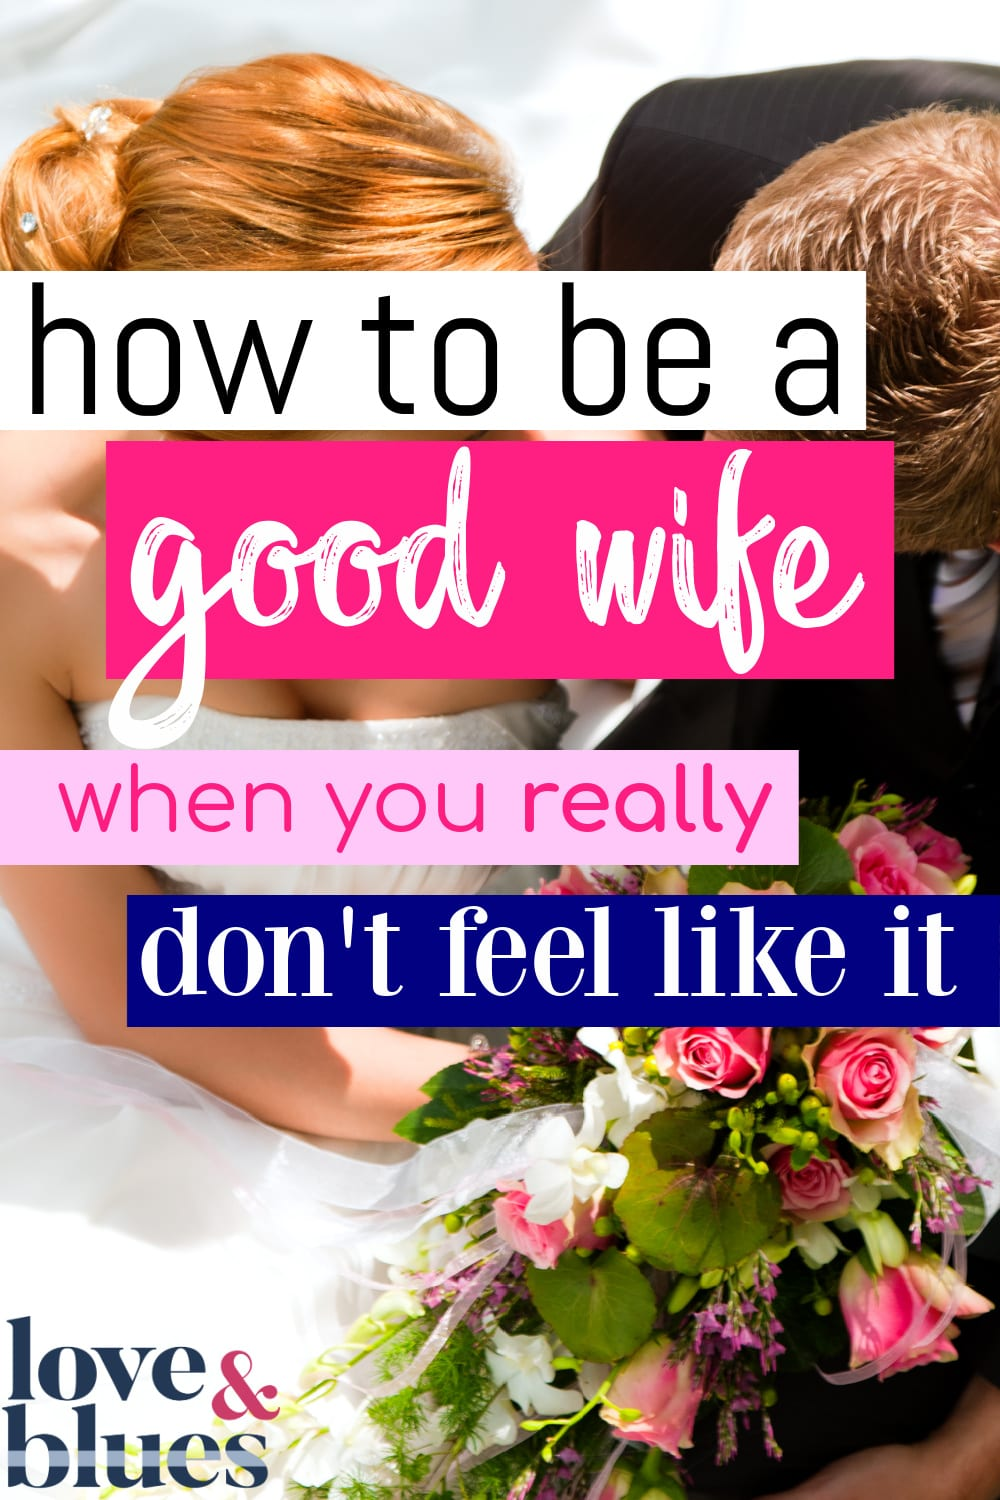 Great tips on how to be a good wife - with tons of encouragement we've come to expect from Leah Everly ;) Fantastic Christian marriage advice for the discouraged wife.